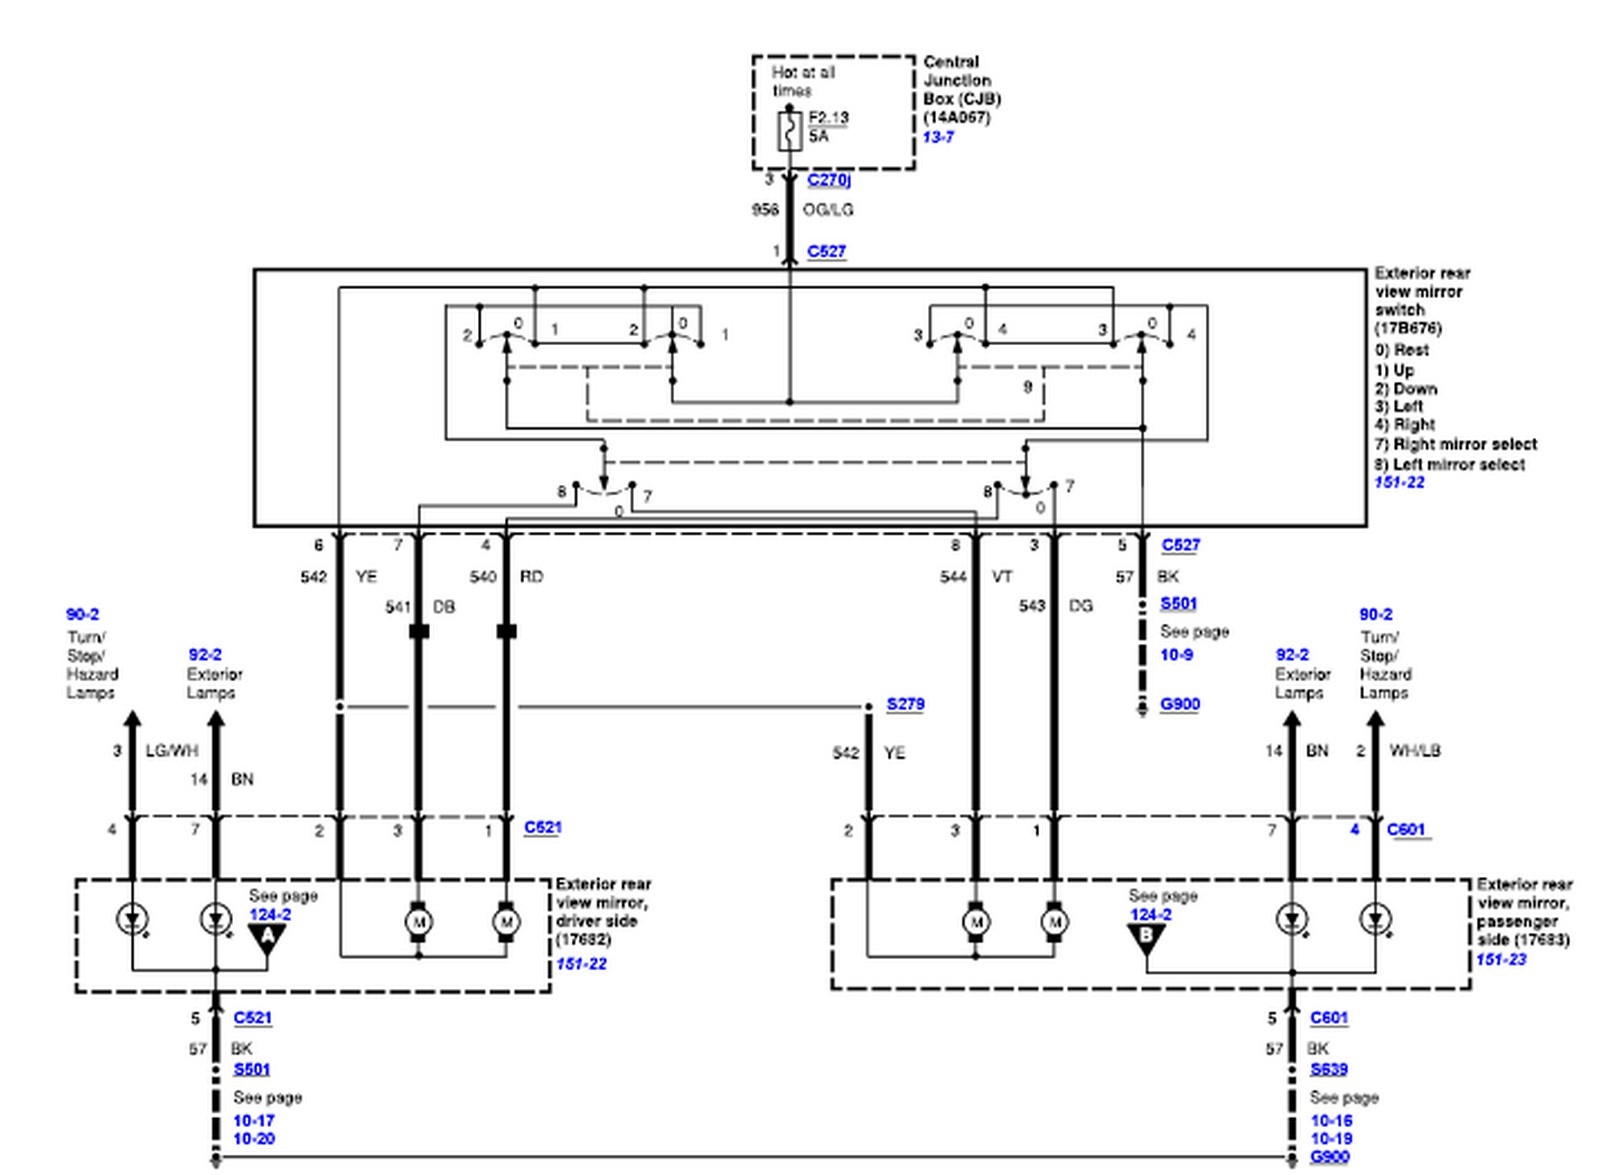 wiring diagram for whelen edge 9m whelen csp690 wiring diagram | free wiring diagram 36 volt wiring diagram for forward and reverse switch for 1985 club car